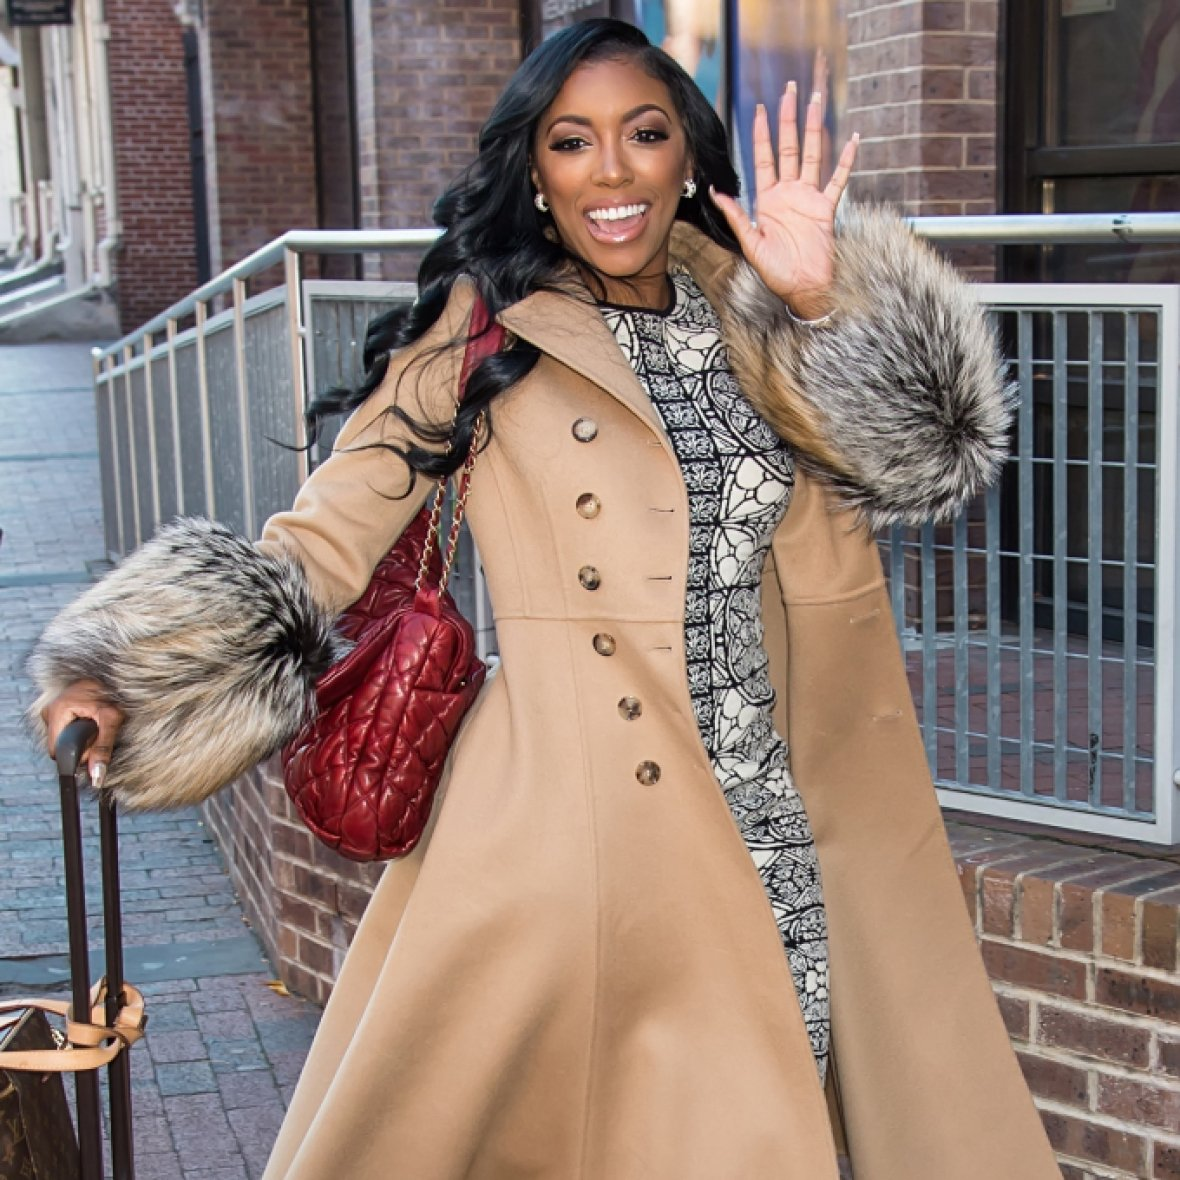 Porsha Williams Is Free To Be Herself In 2021 – Check Out How Happy She Is In This Video